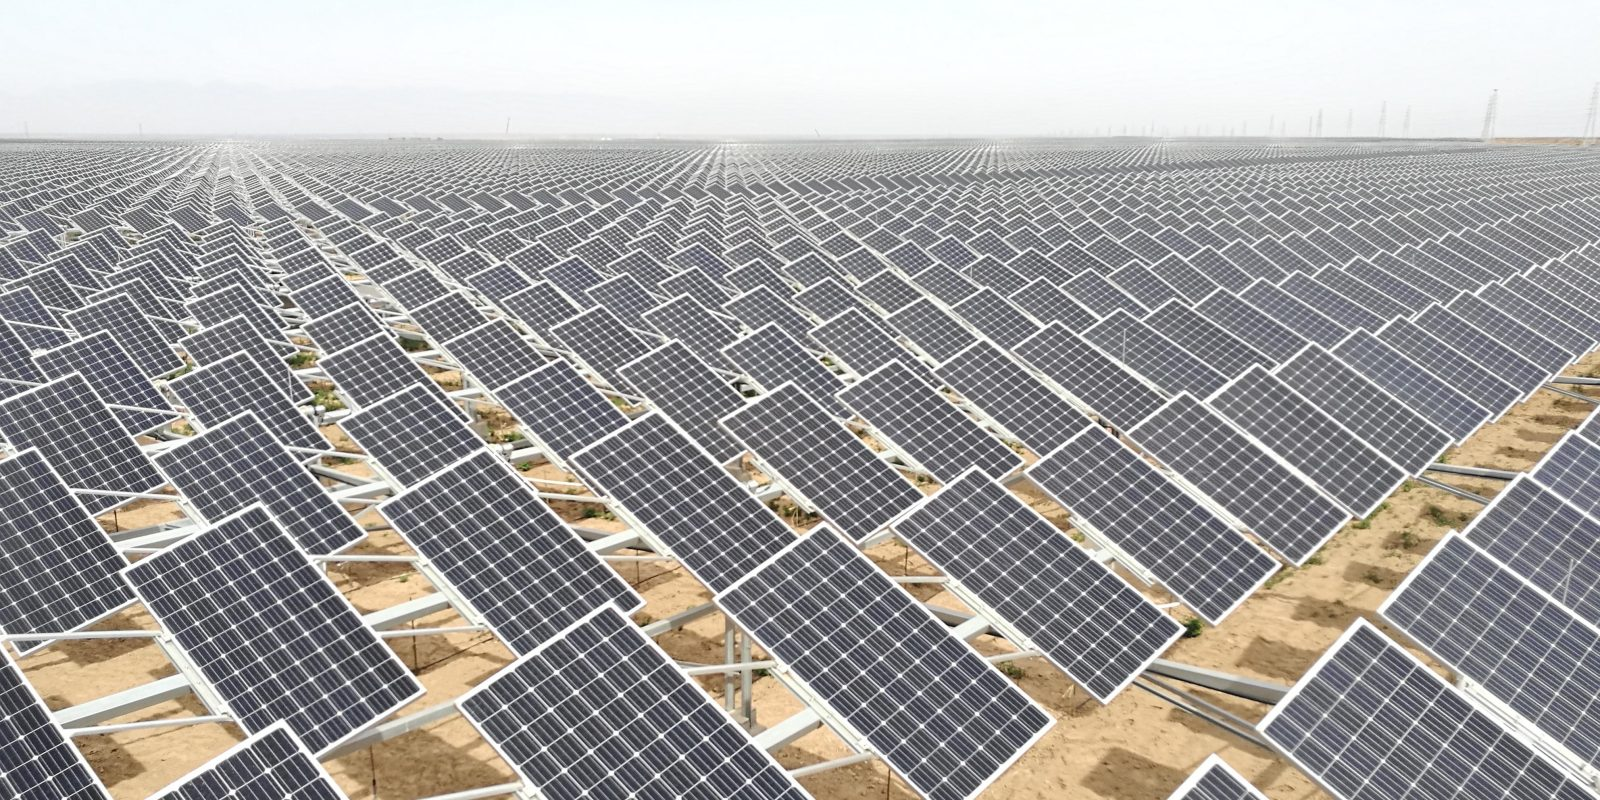 EGEB: Jinko $100M into PERC solar cells, Project Sunroof in Germany, more